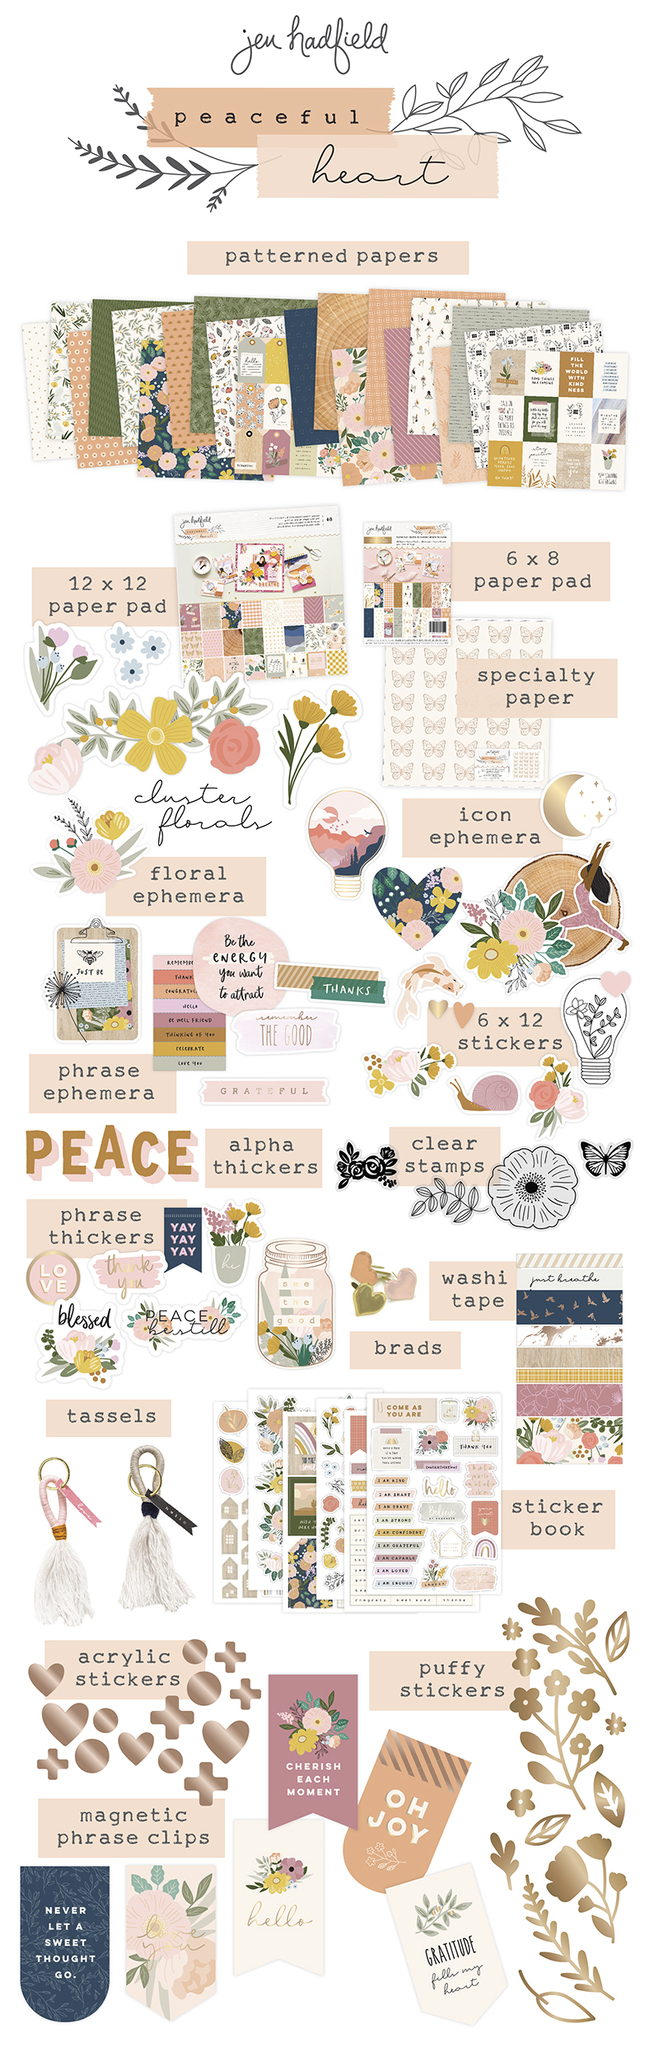 New Jen Hadfield Peaceful Heart Line! My new Pebbles paper and embellishment line with a cozy boho feel is available now!